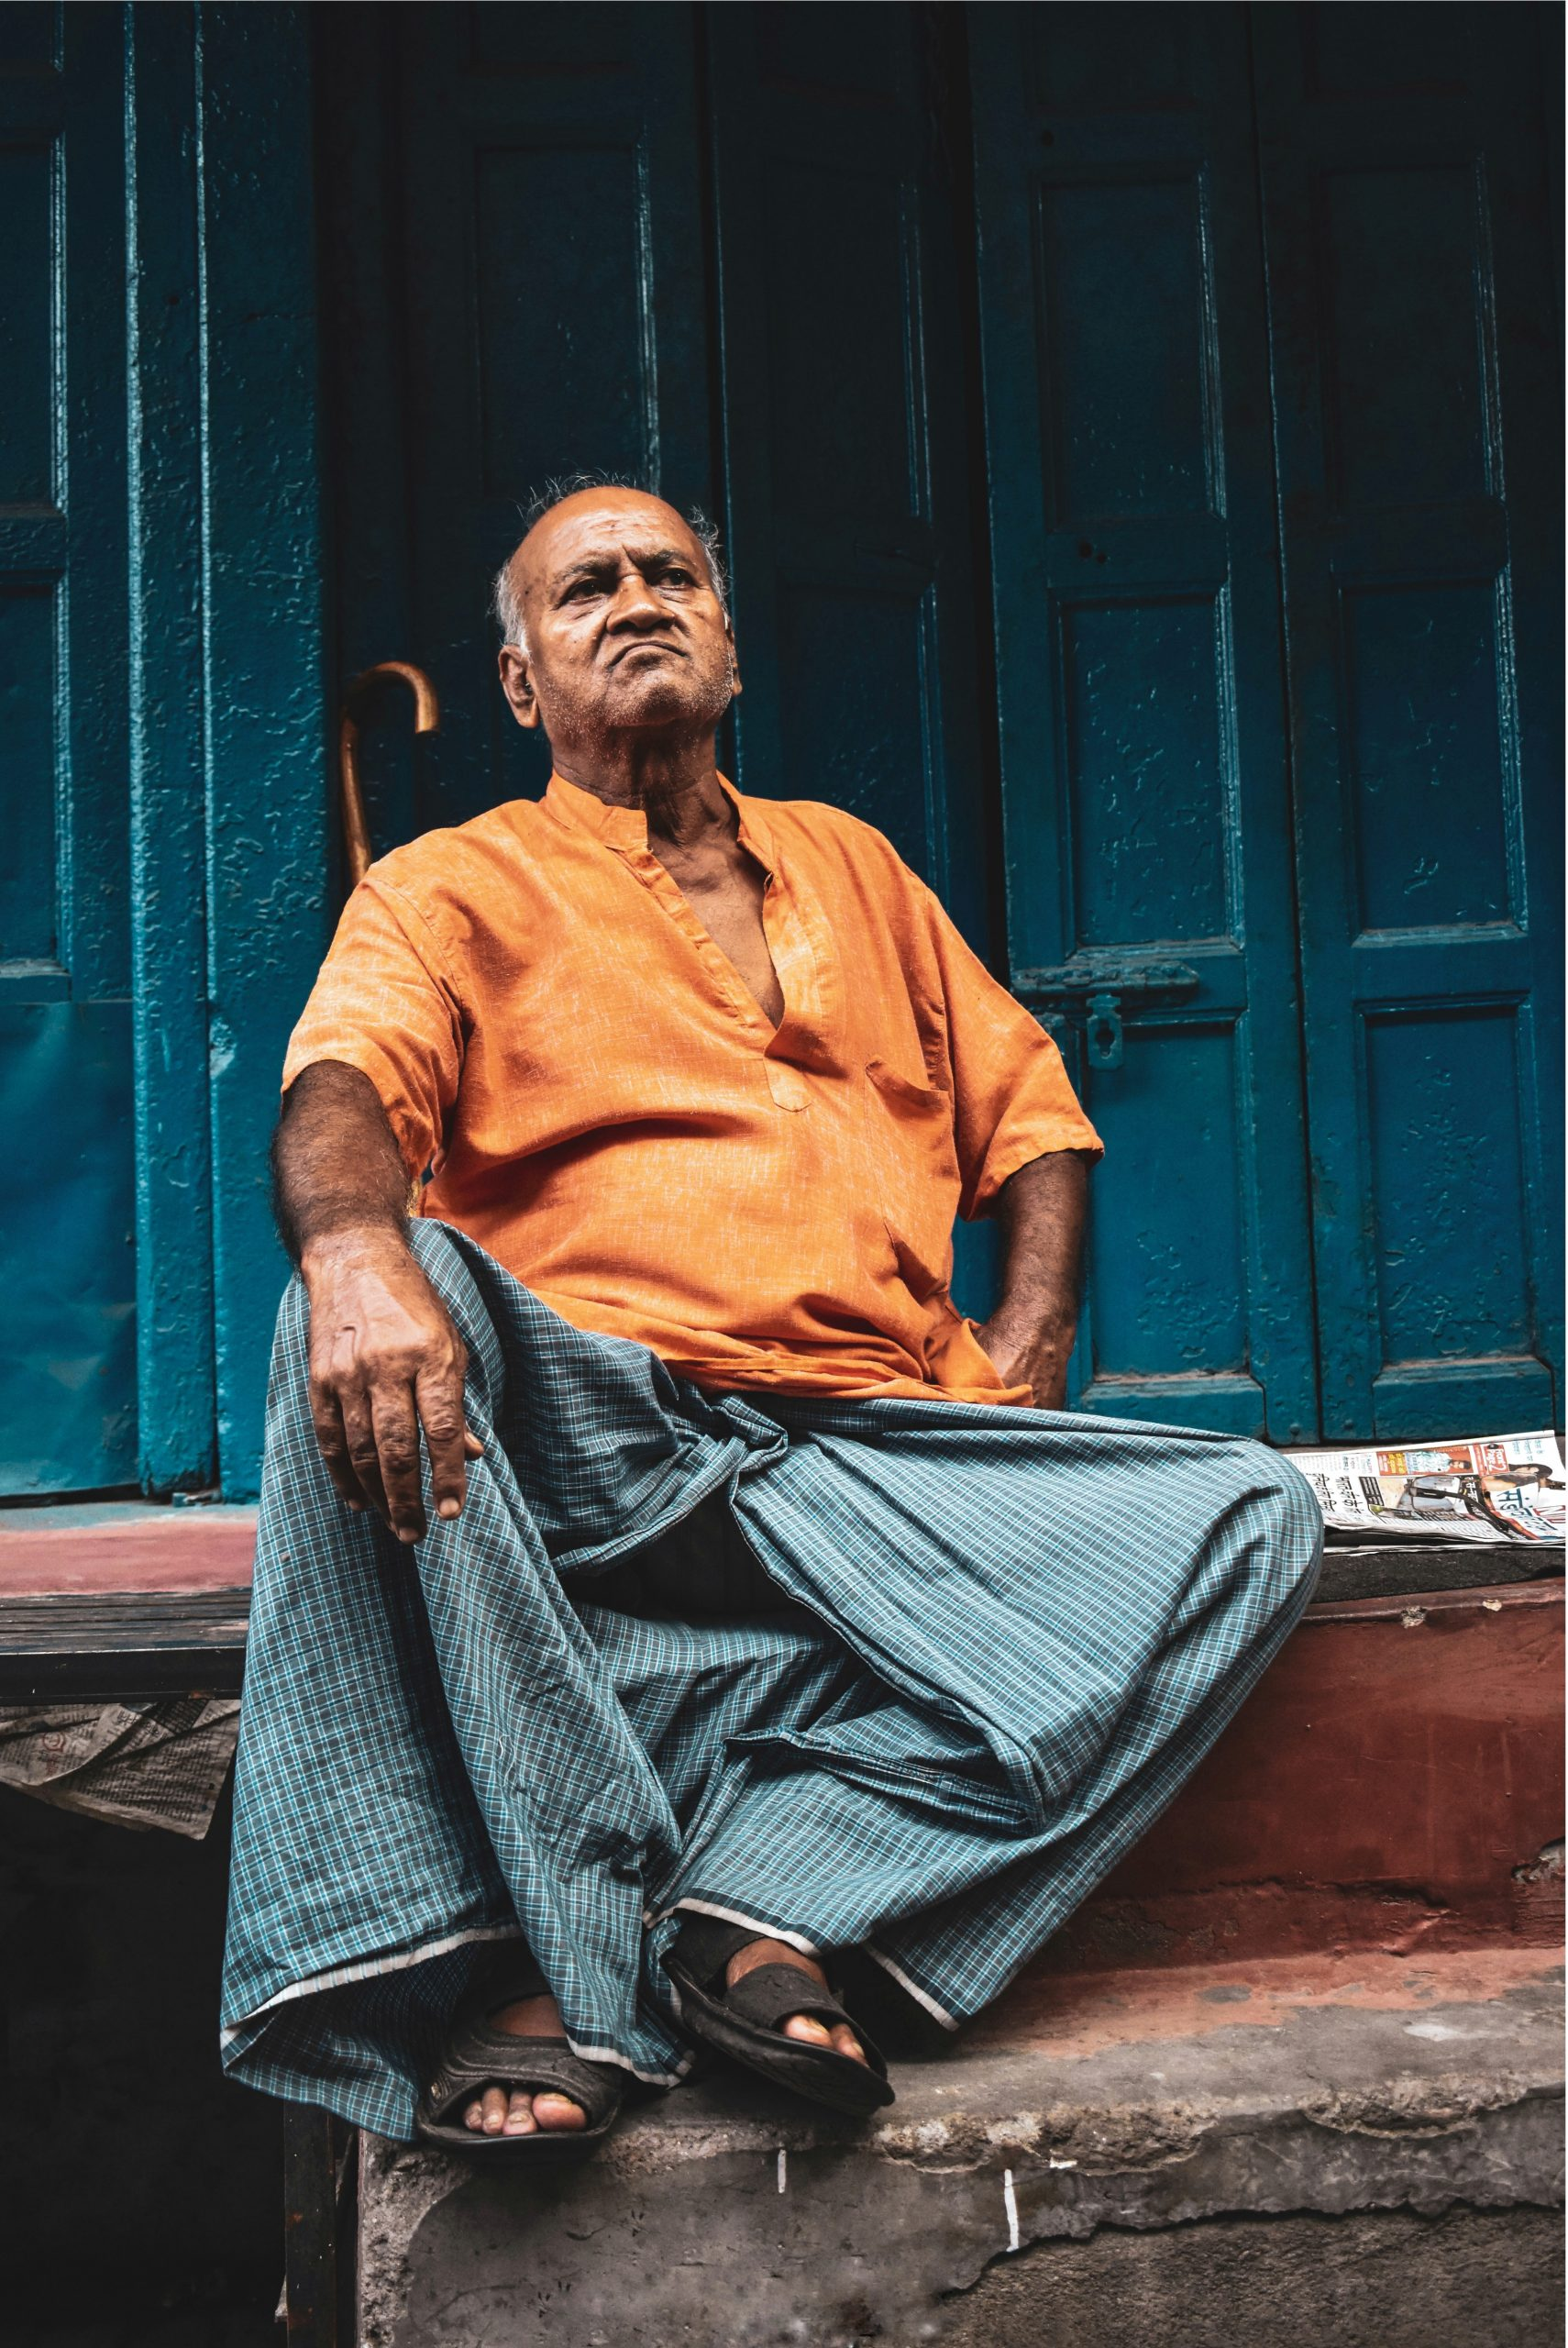 An Indian man sitting angrily on the steps.